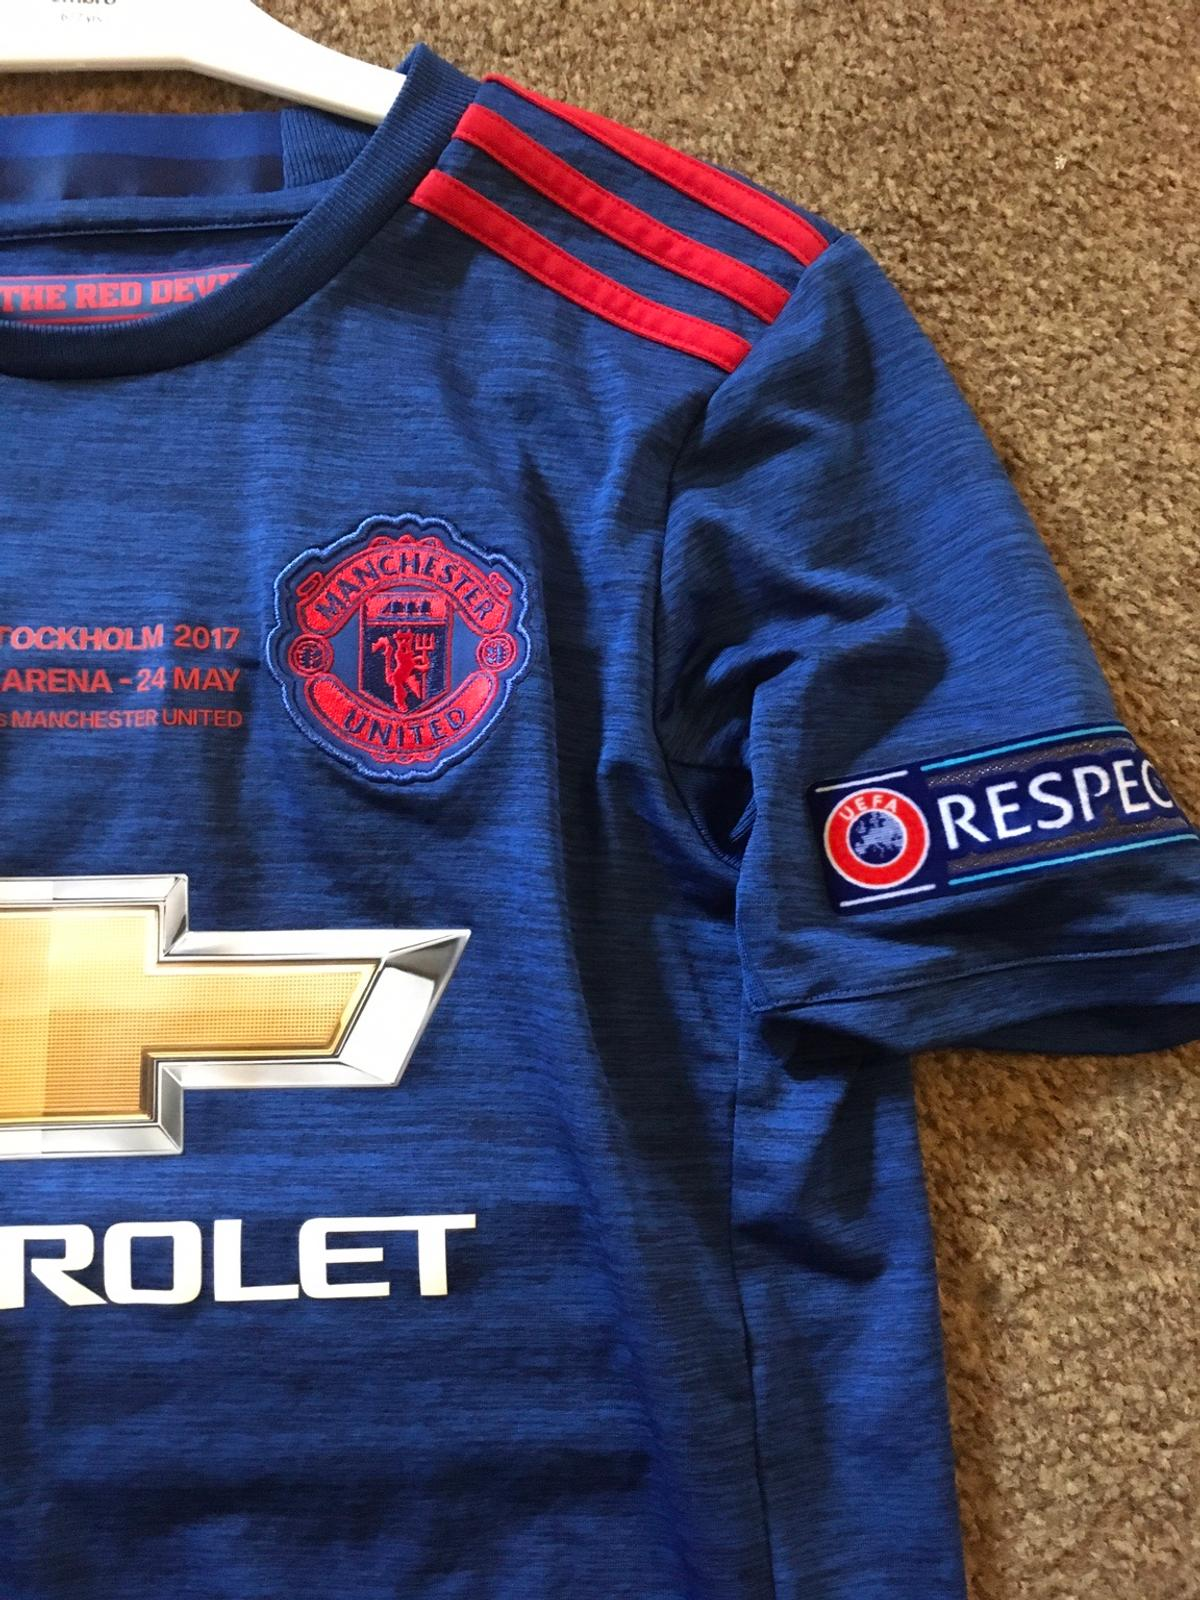 Manchester United kit kids age 11-12 years POGBA #6 shirt and shorts set, shirt tag has fell off but shorts still has shop tags on, brand new tagged unworn stunning looking kit, Europa league final 2017 p&p £2.99